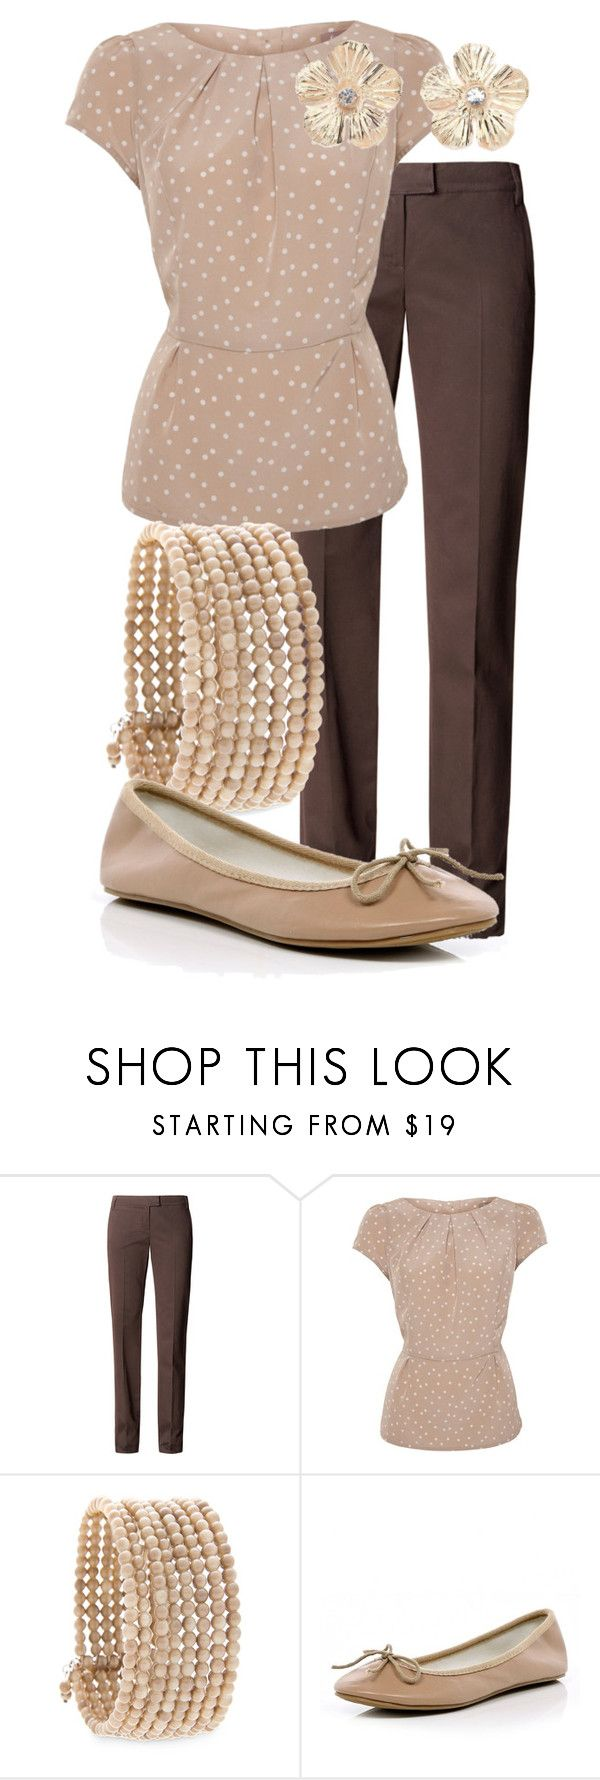 """""""Teacher Outfits on a Teacher's Budget 32"""" by allij28 ❤ liked on Polyvore featuring MANGO, A